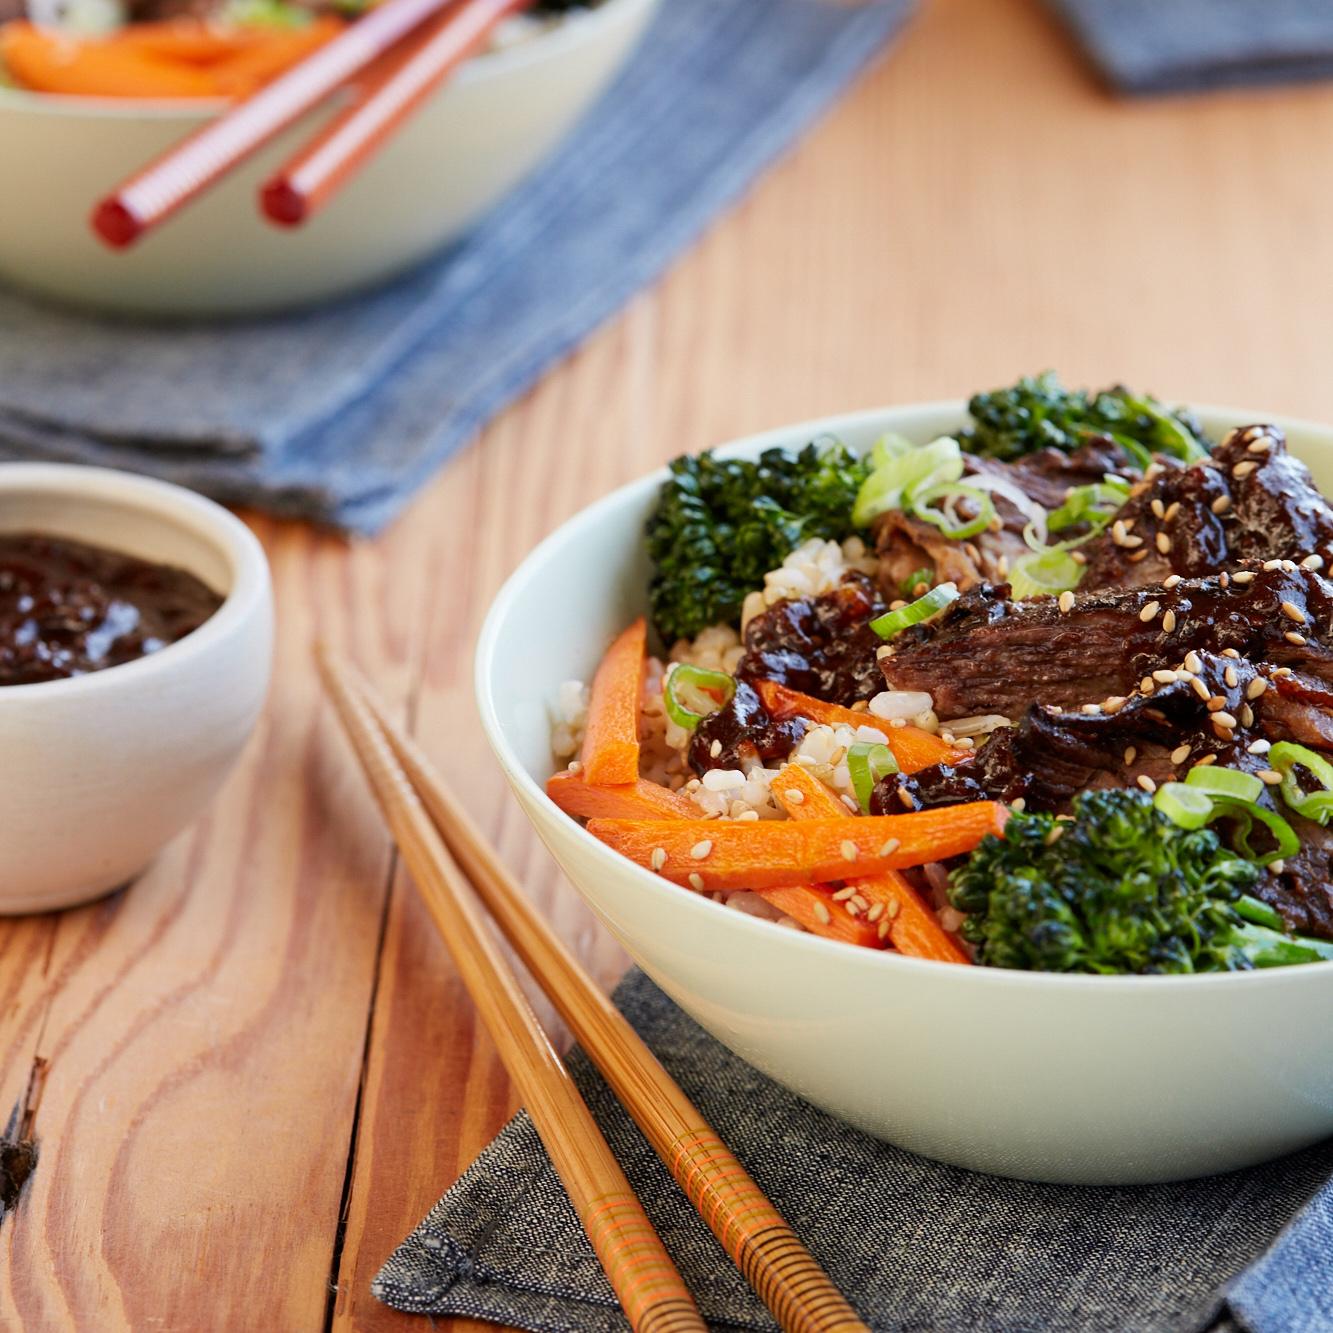 <p>Instead of sugar, this teriyaki sauce uses prunes and mirin for sweetness. Use it as a marinade or a marinade and a slow-cooker sauce for comfort food rice bowls.</p>